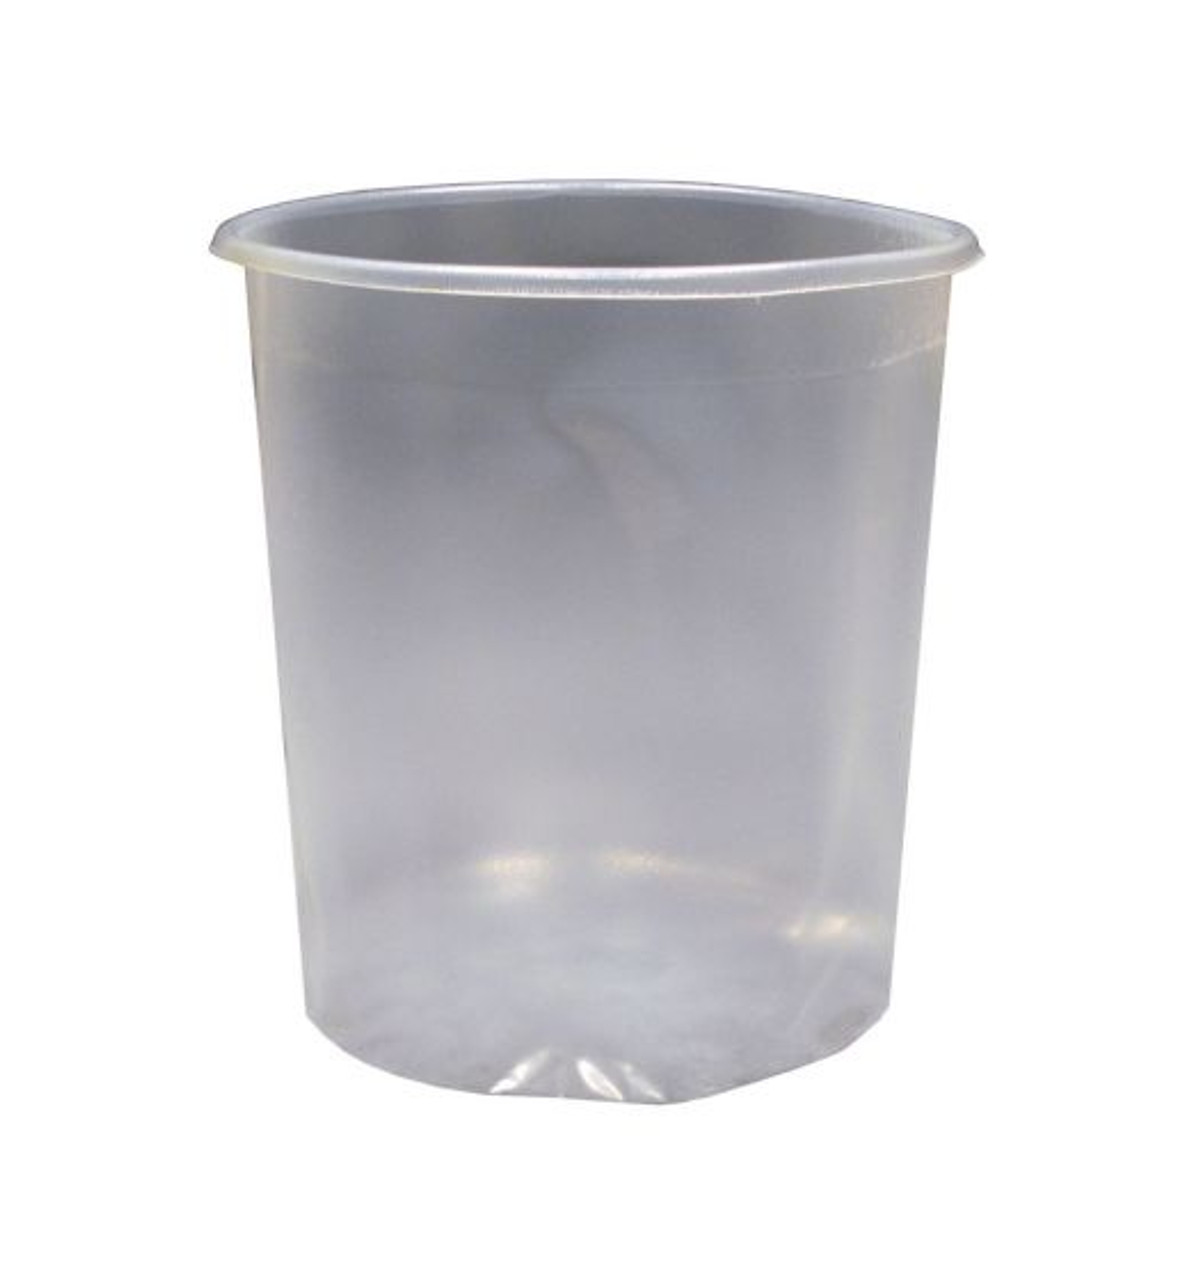 5 GALLON 15 MIL LDPE STRAIGHT SIDED PAIL LINER